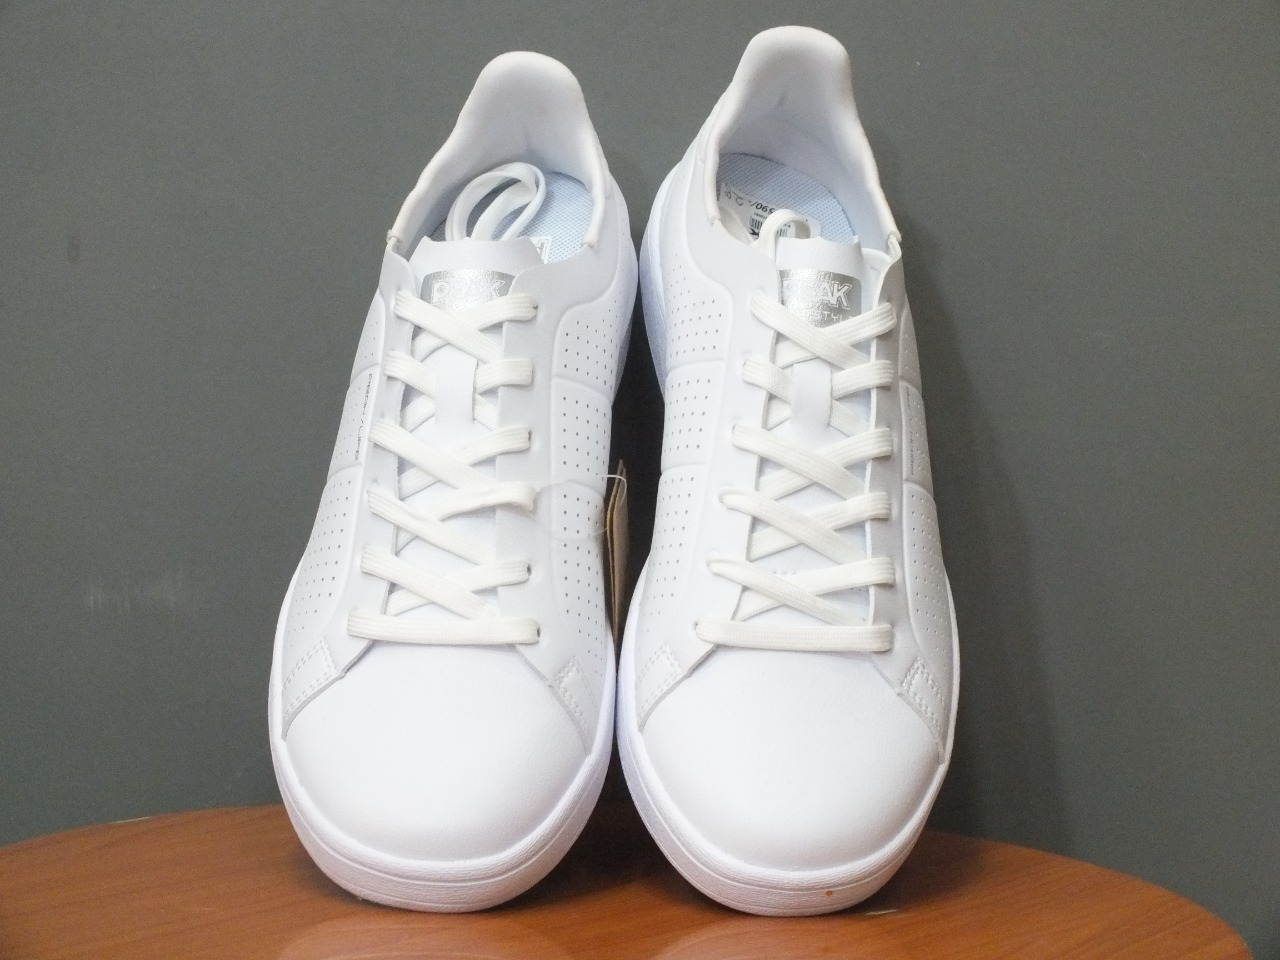 PEAK White Cultural Shoes For Women- FW02068B